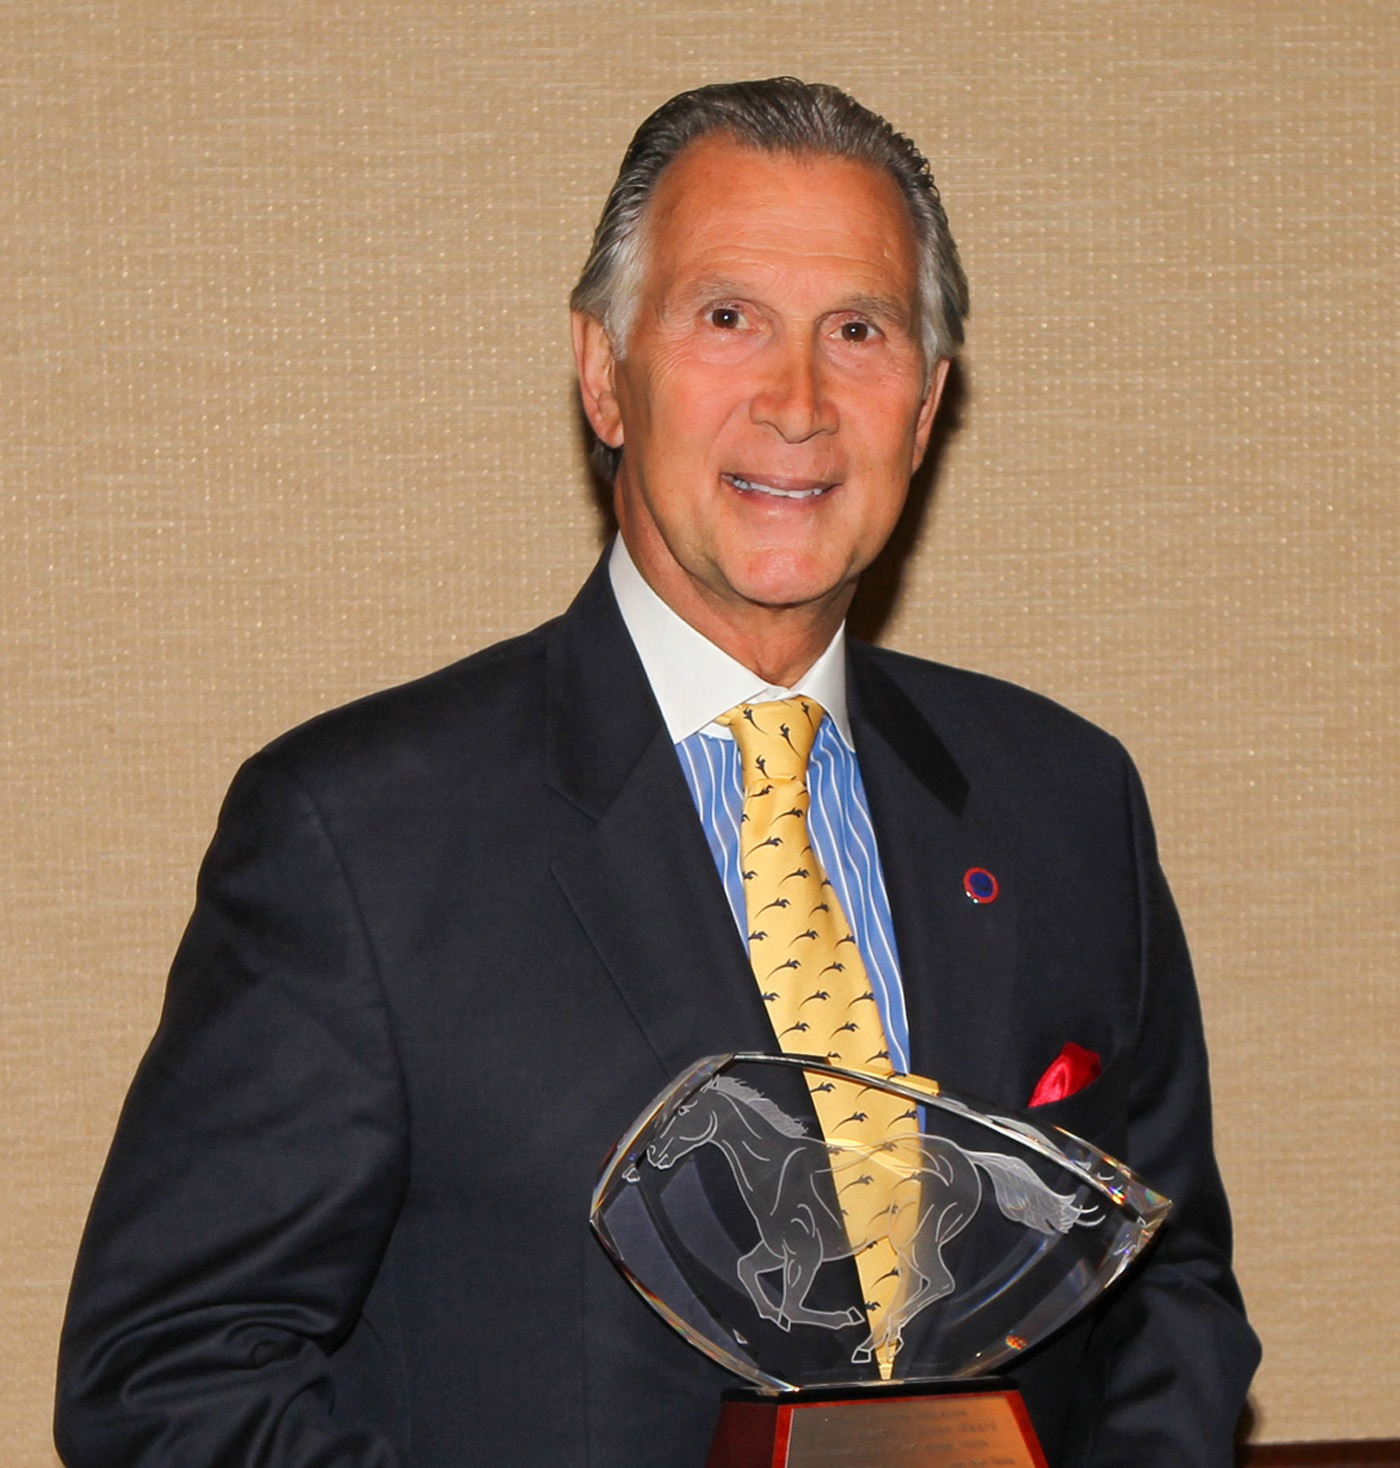 Executive Director of the Intercollegiate Horse Show Association Honored at the  Equine Industry Vision Award Tenth Anniversary